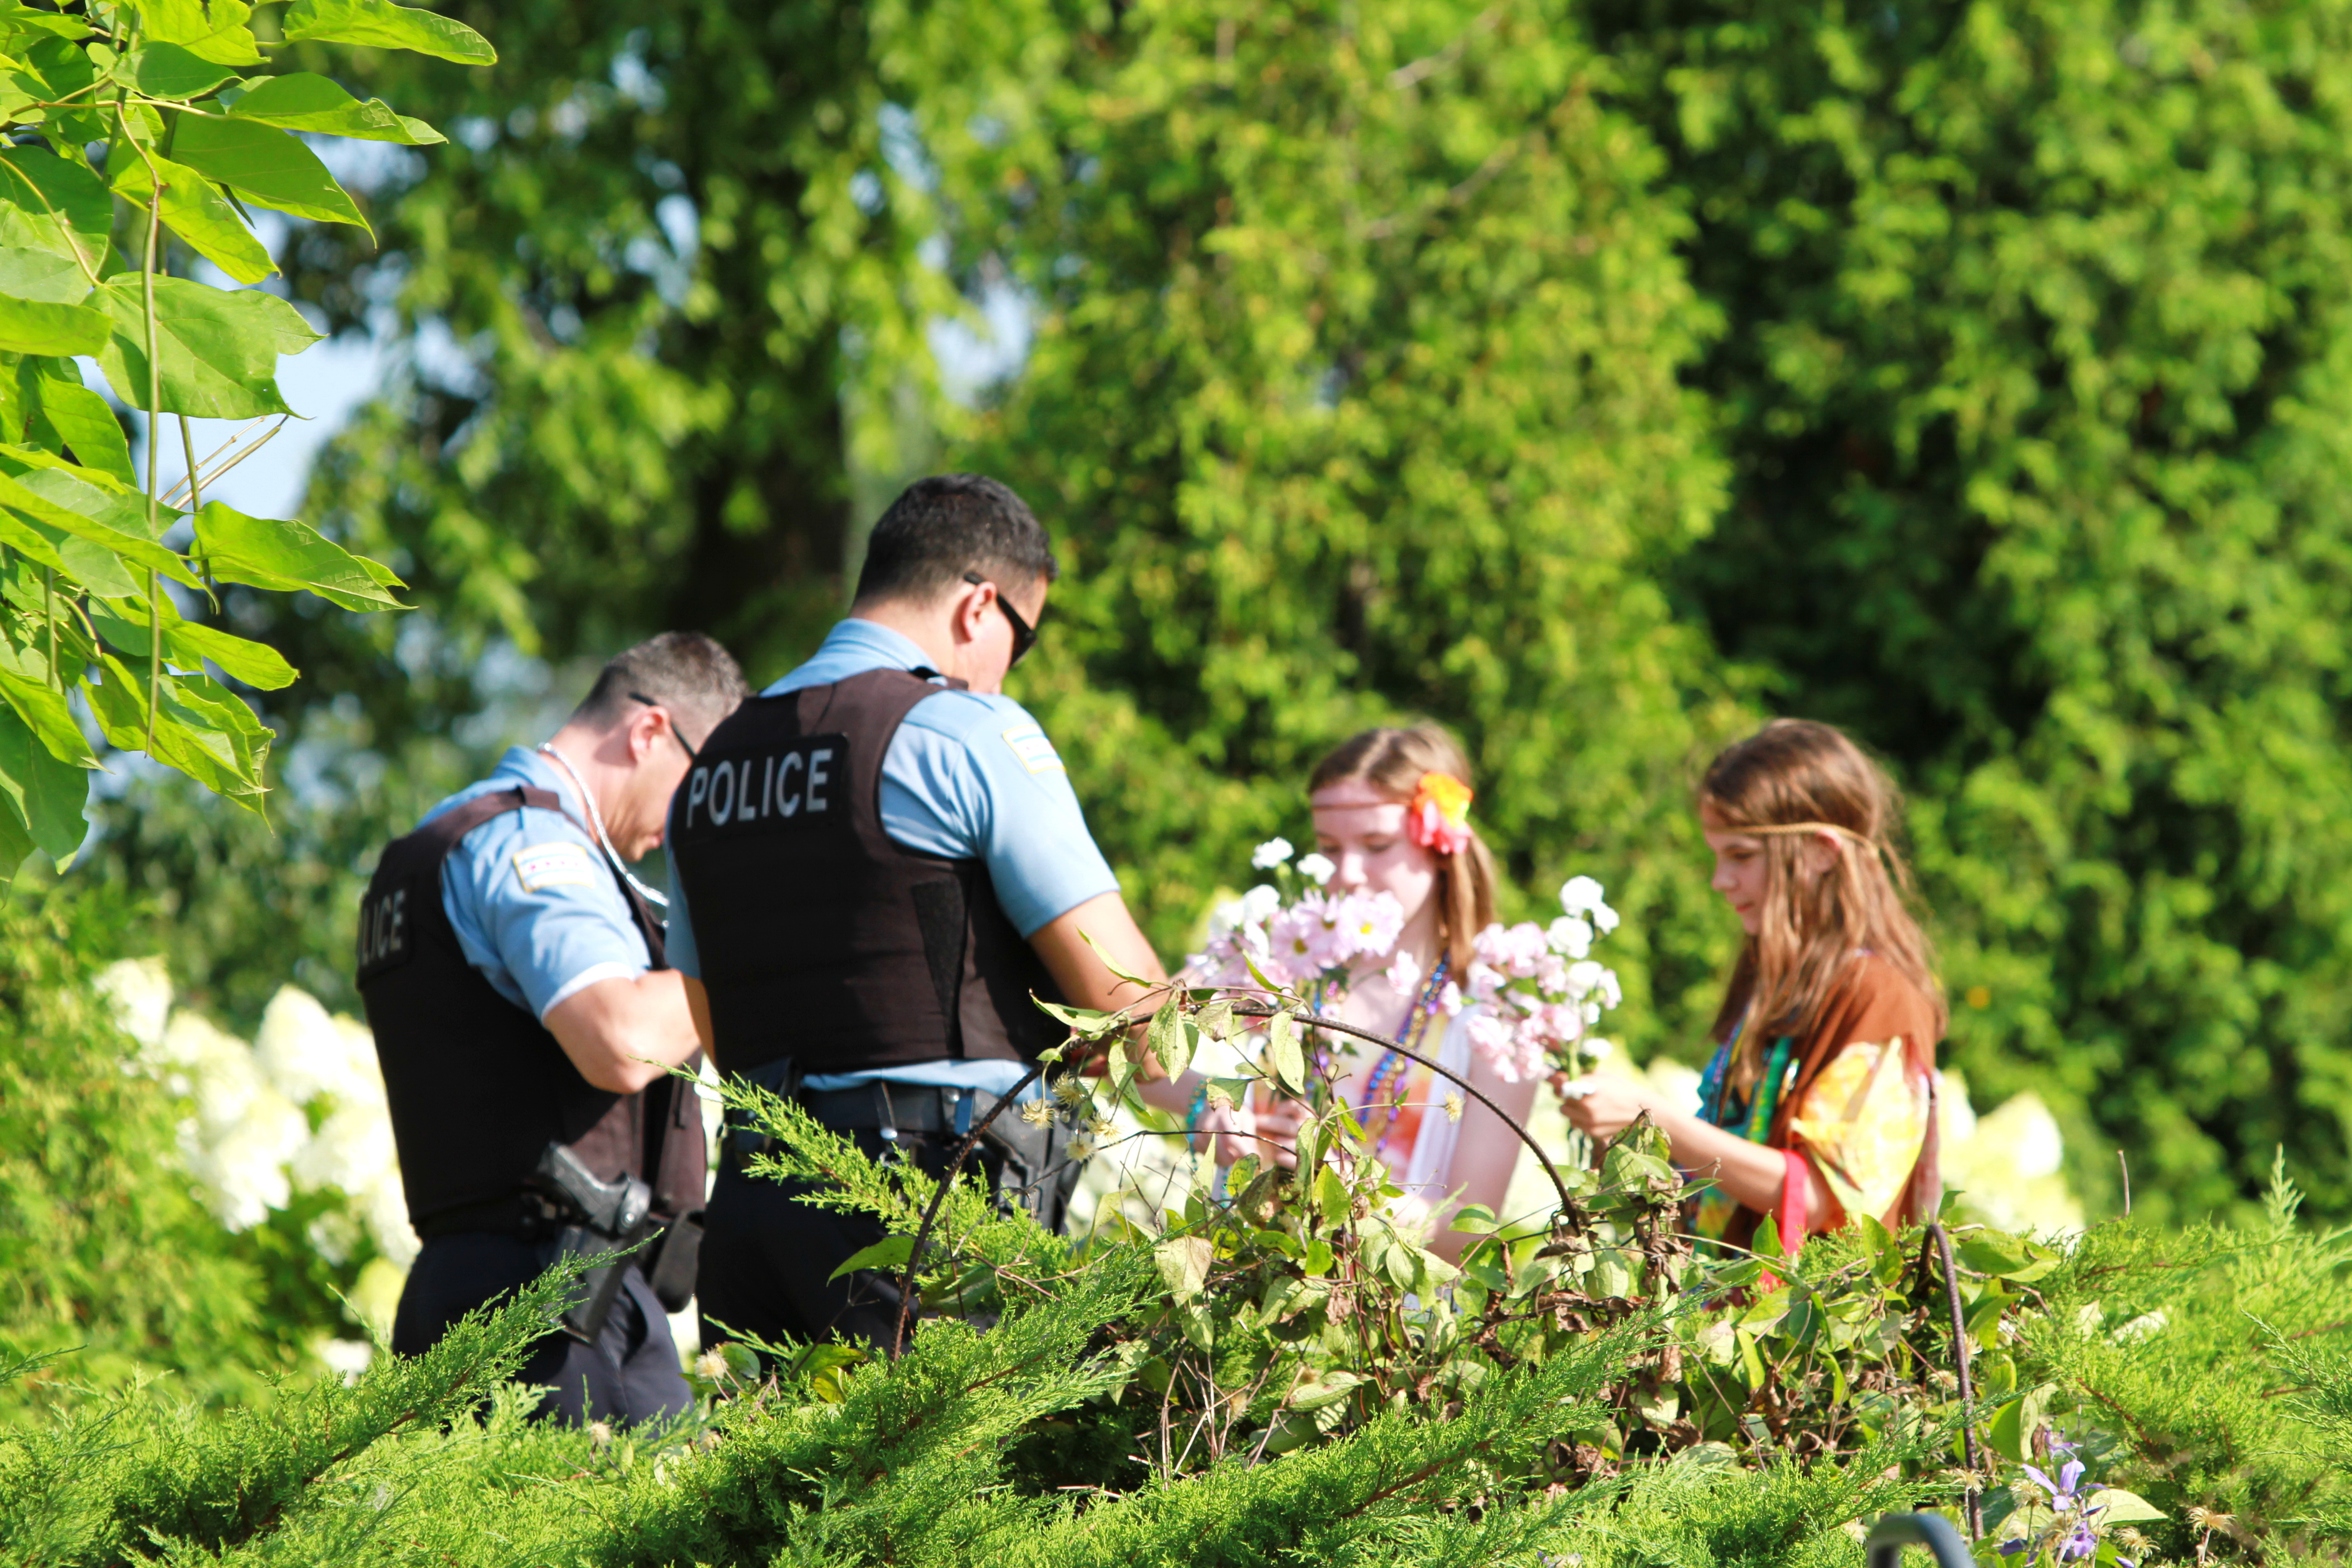 FIGMENT-Chi-Aug10-11.2013-Participatory-Police-1-by-Diana.M.Popan.jpg